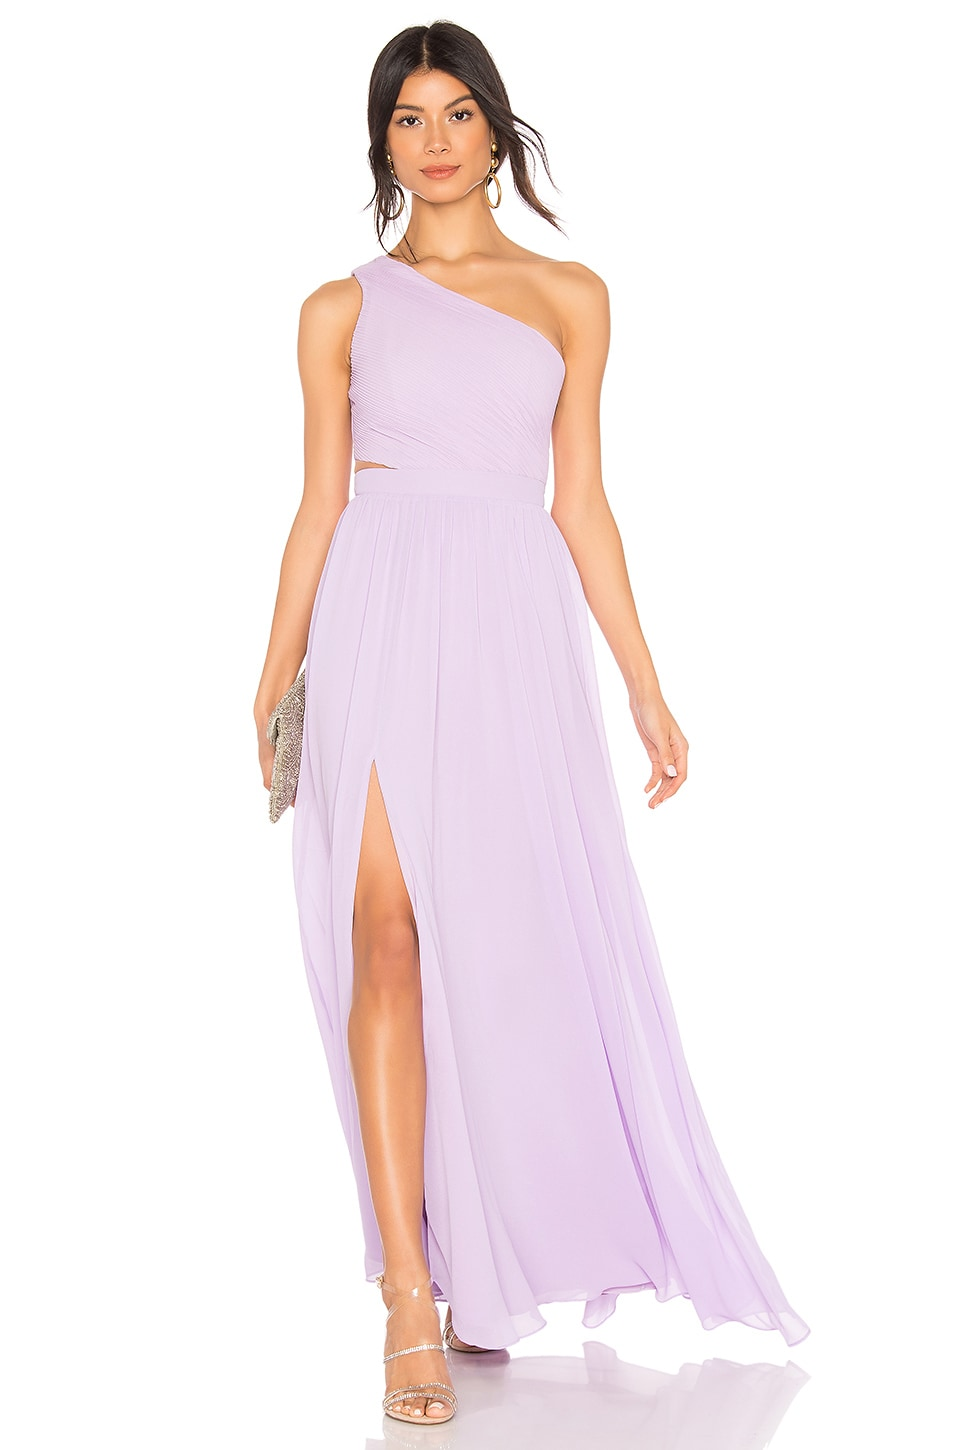 NBD Australis Gown in Lilac